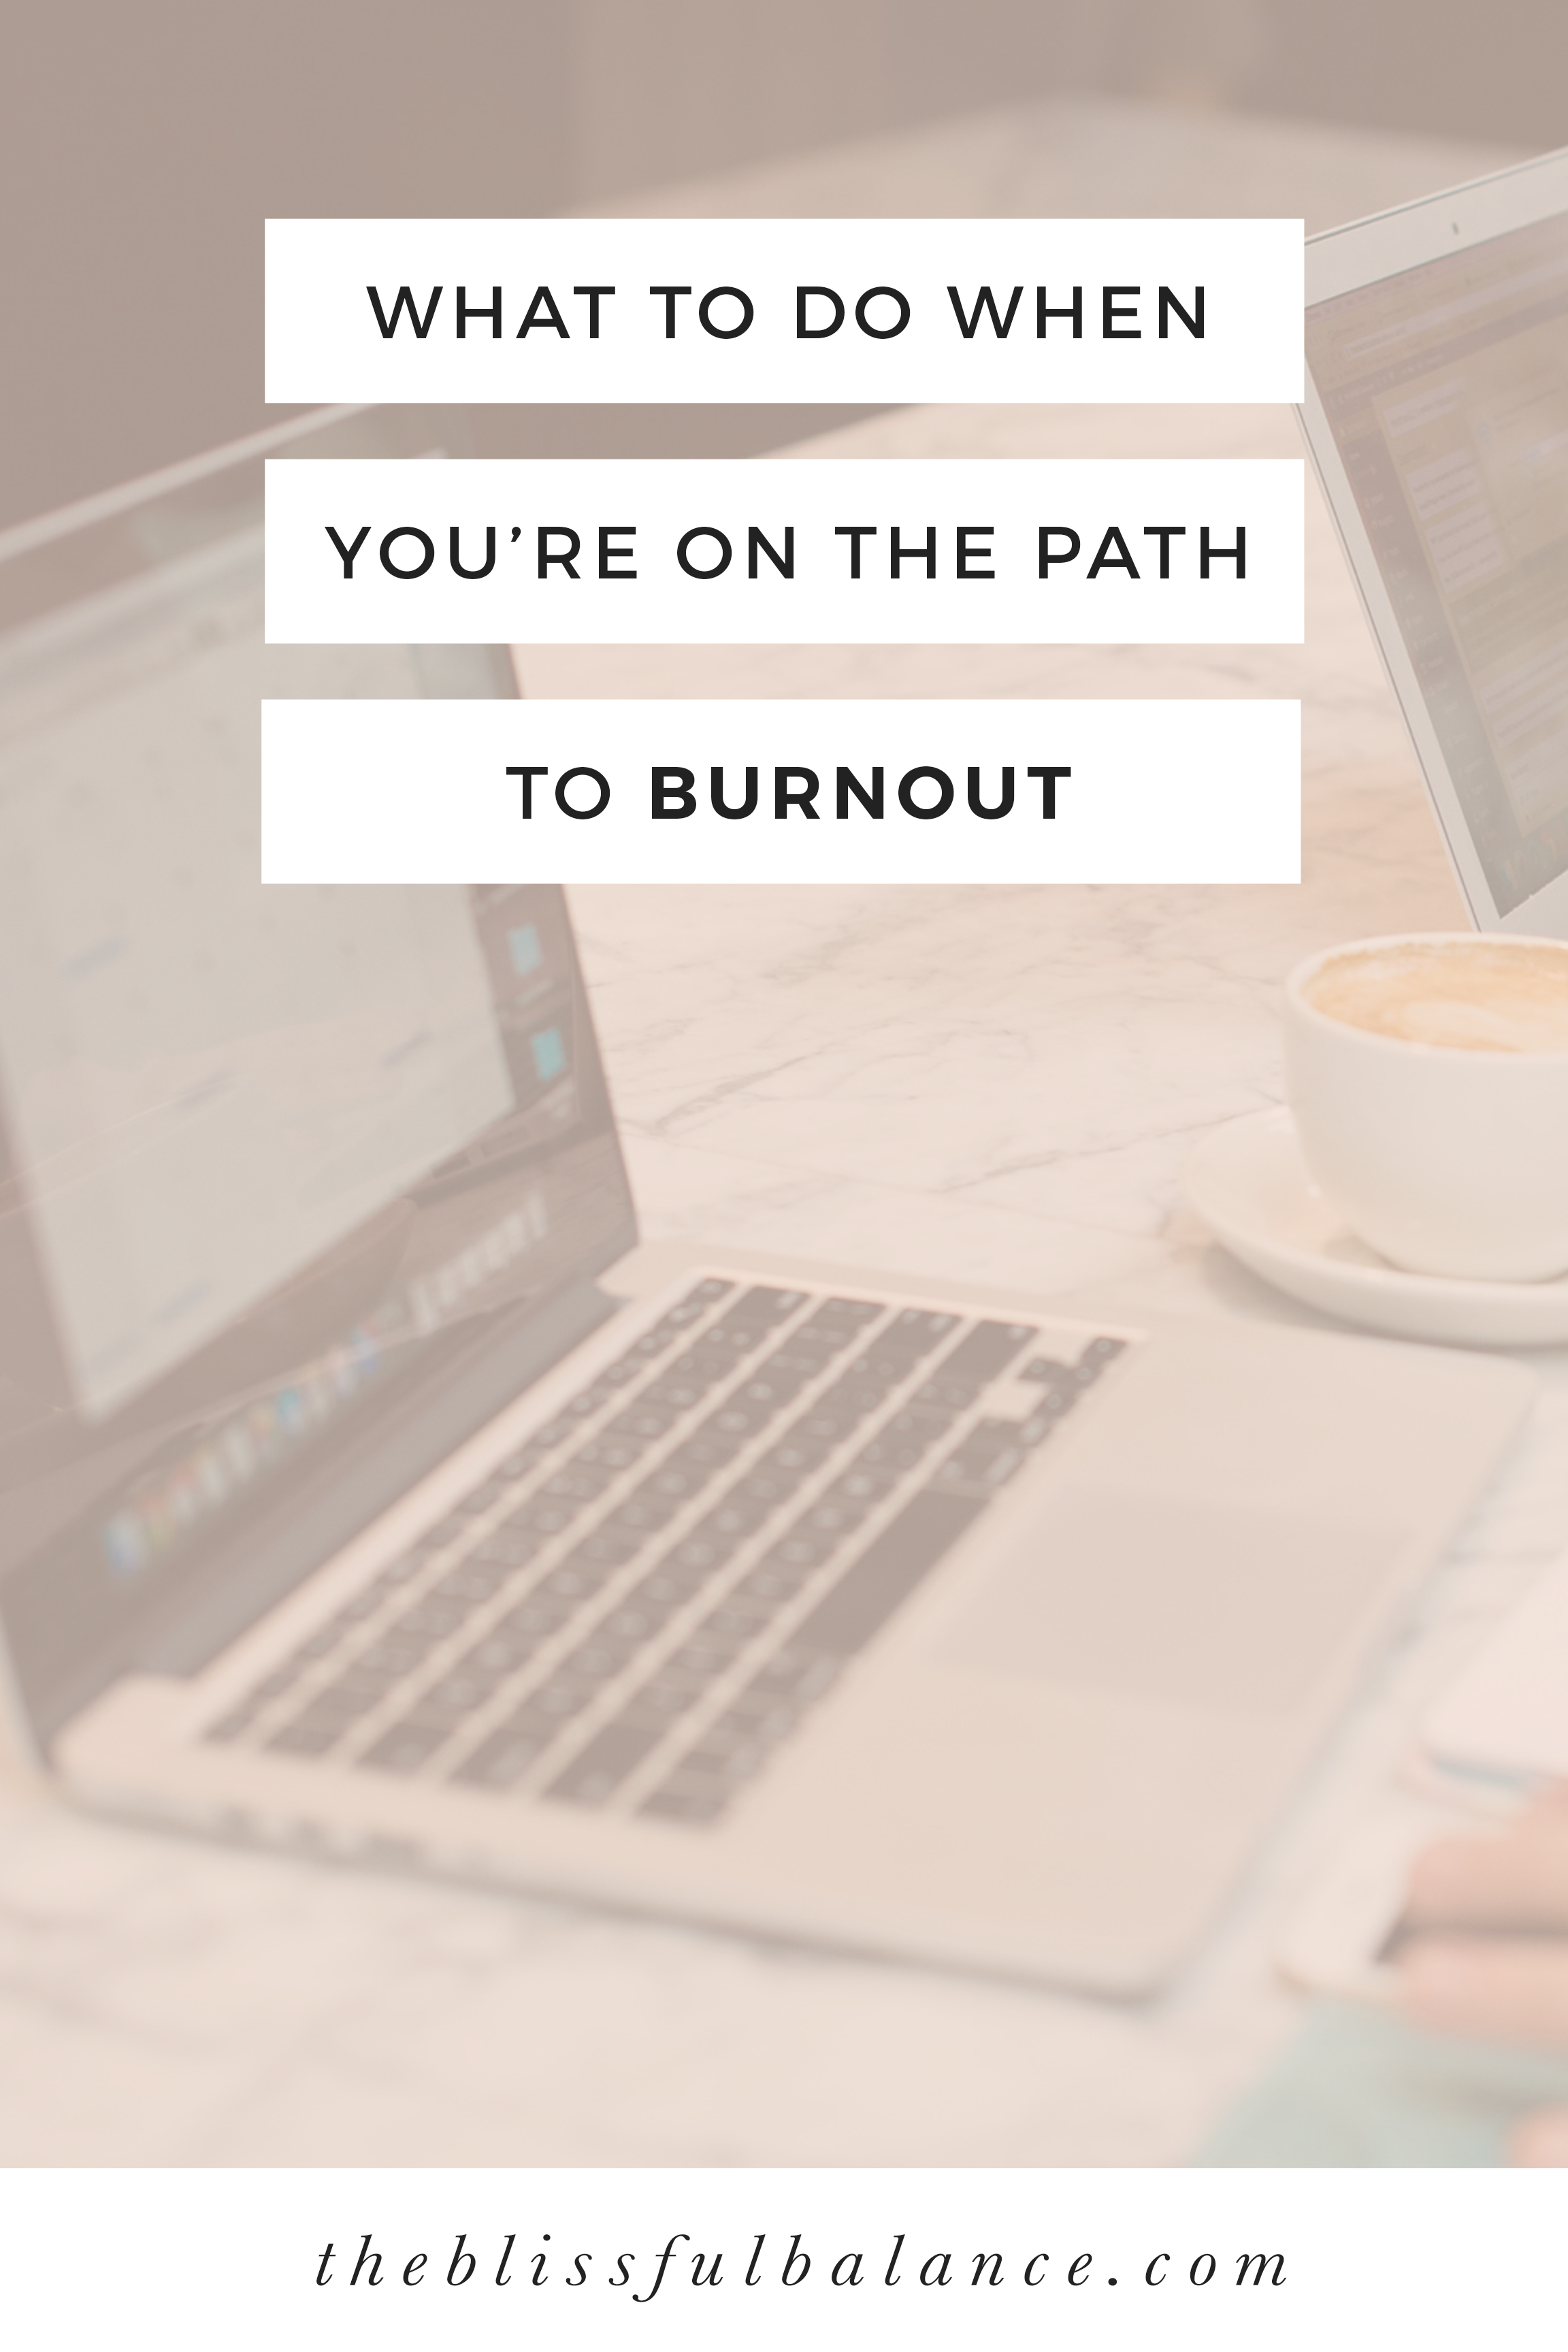 WHAT TO DO WHEN YOU'RE ON THE PATH TO BURNOUT